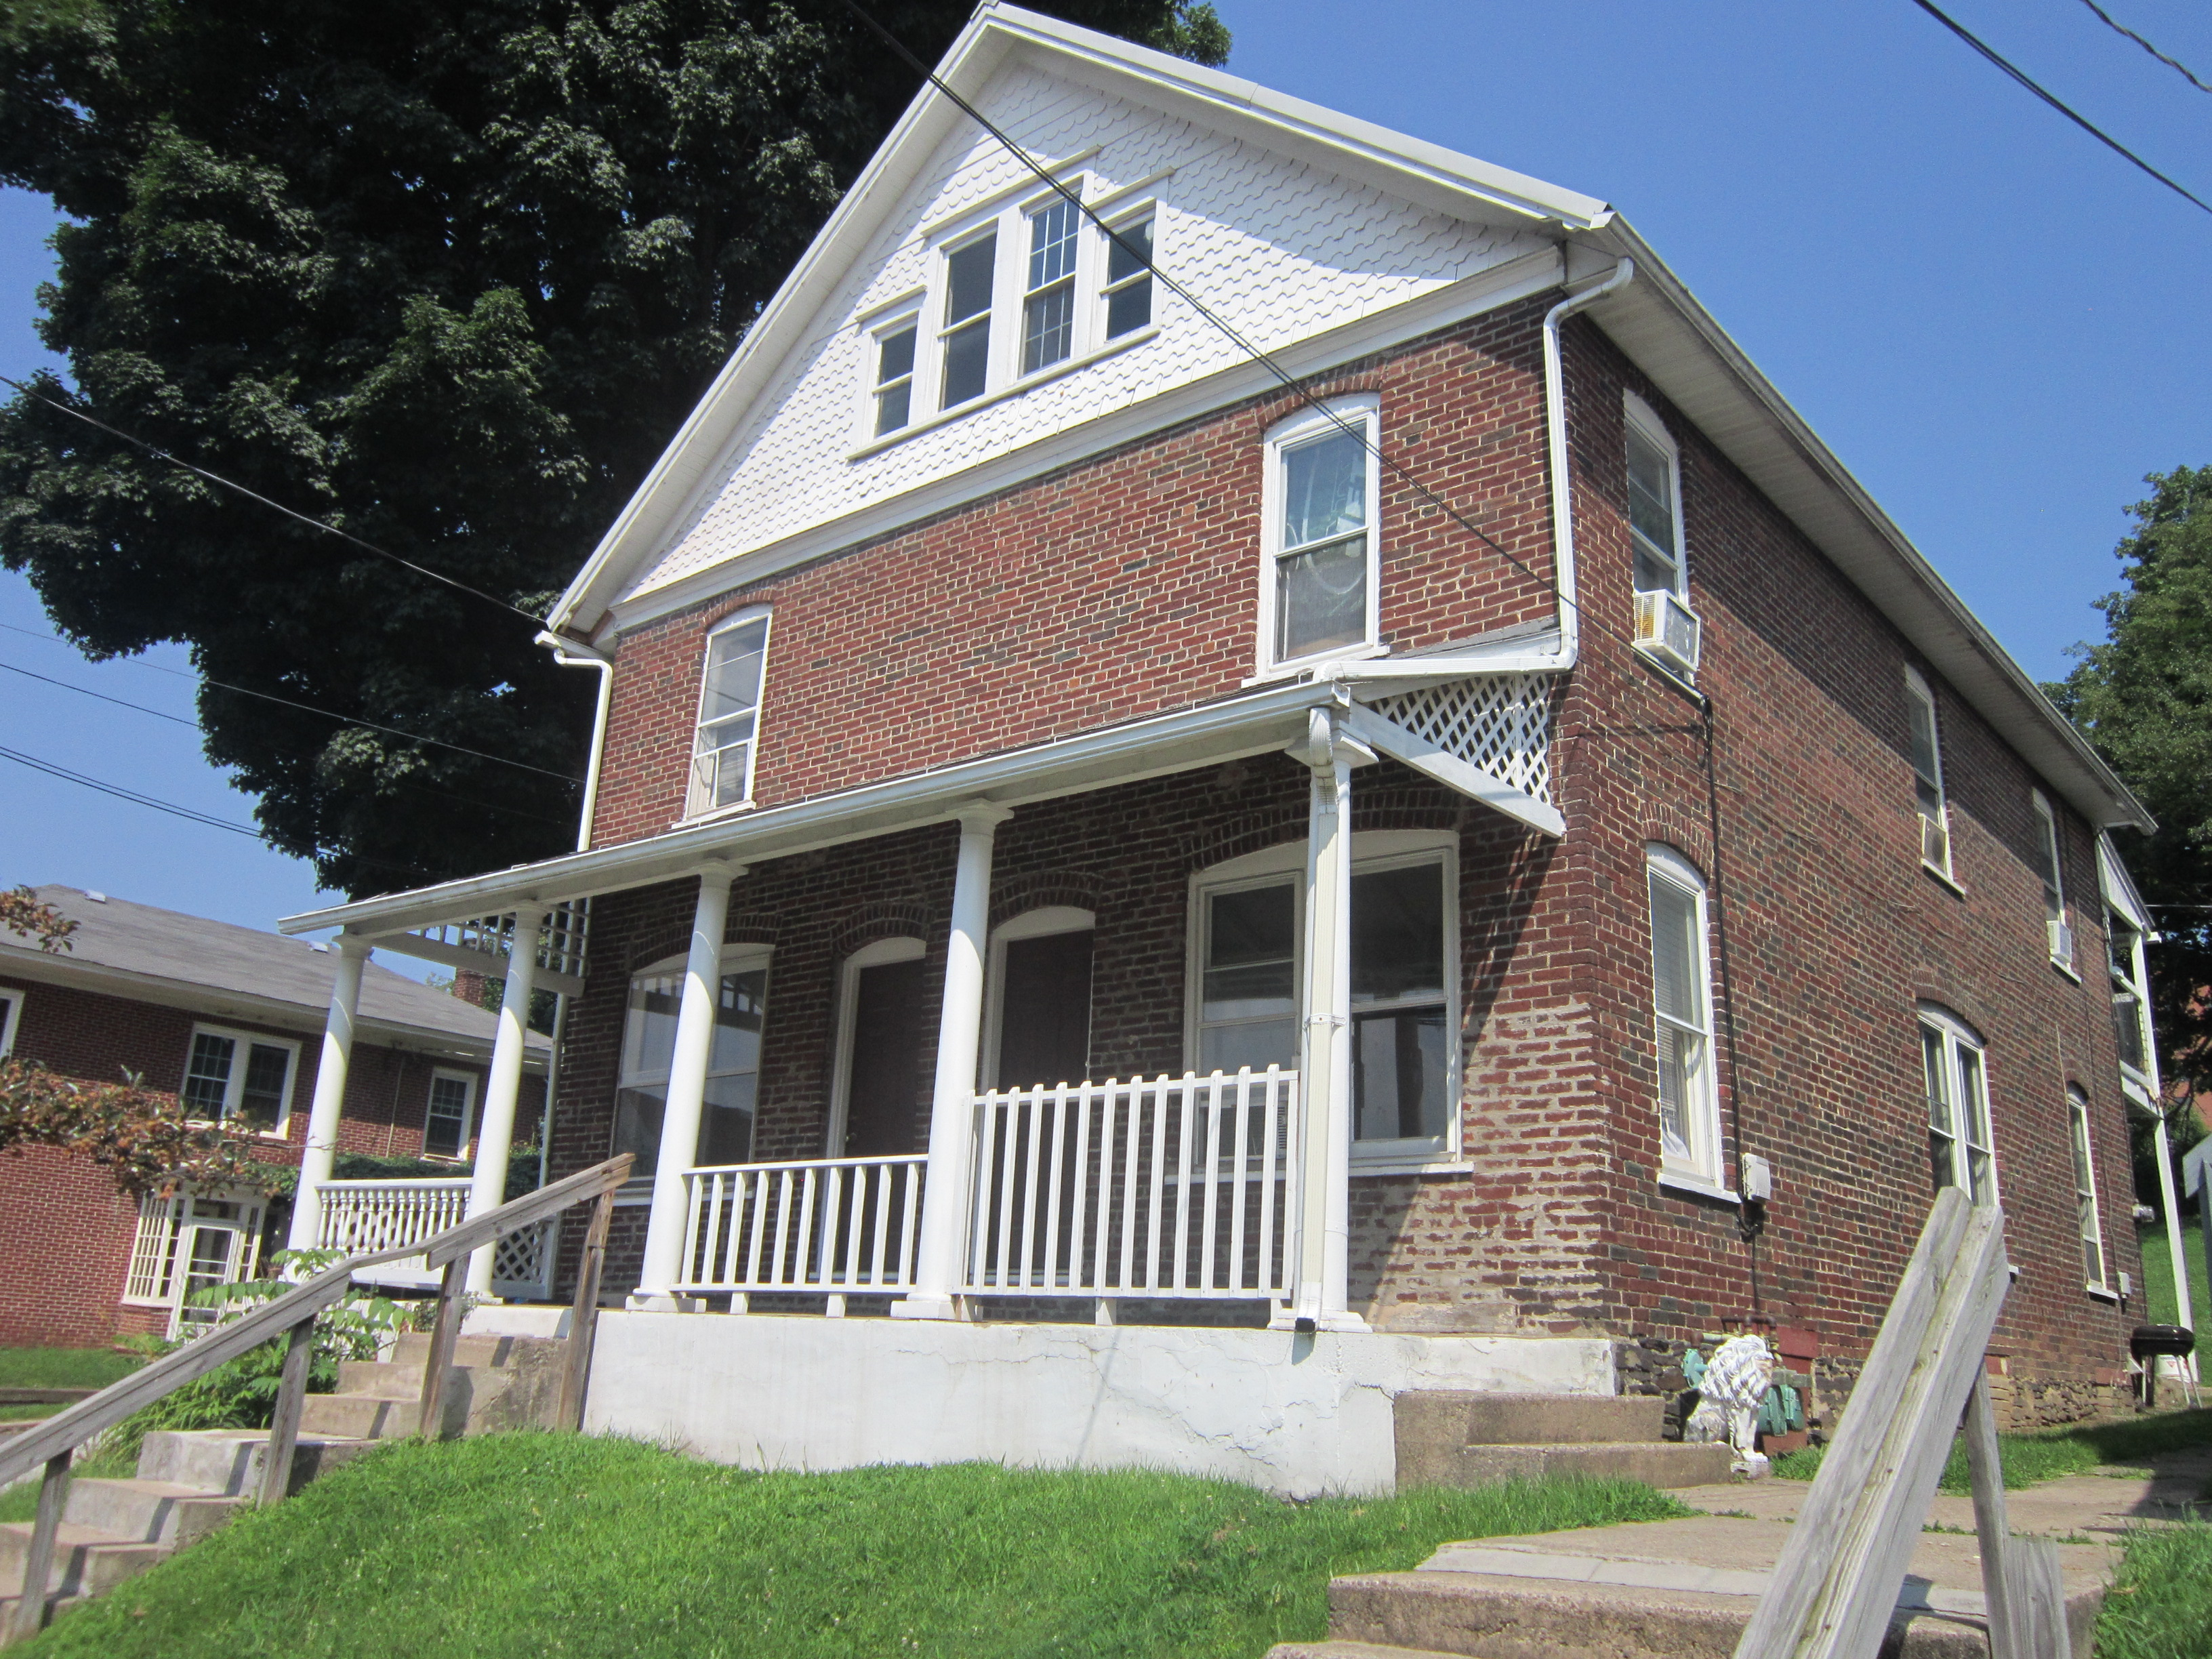 501-503 E 4th St., Bloomsburg, Pennsylvania 17815